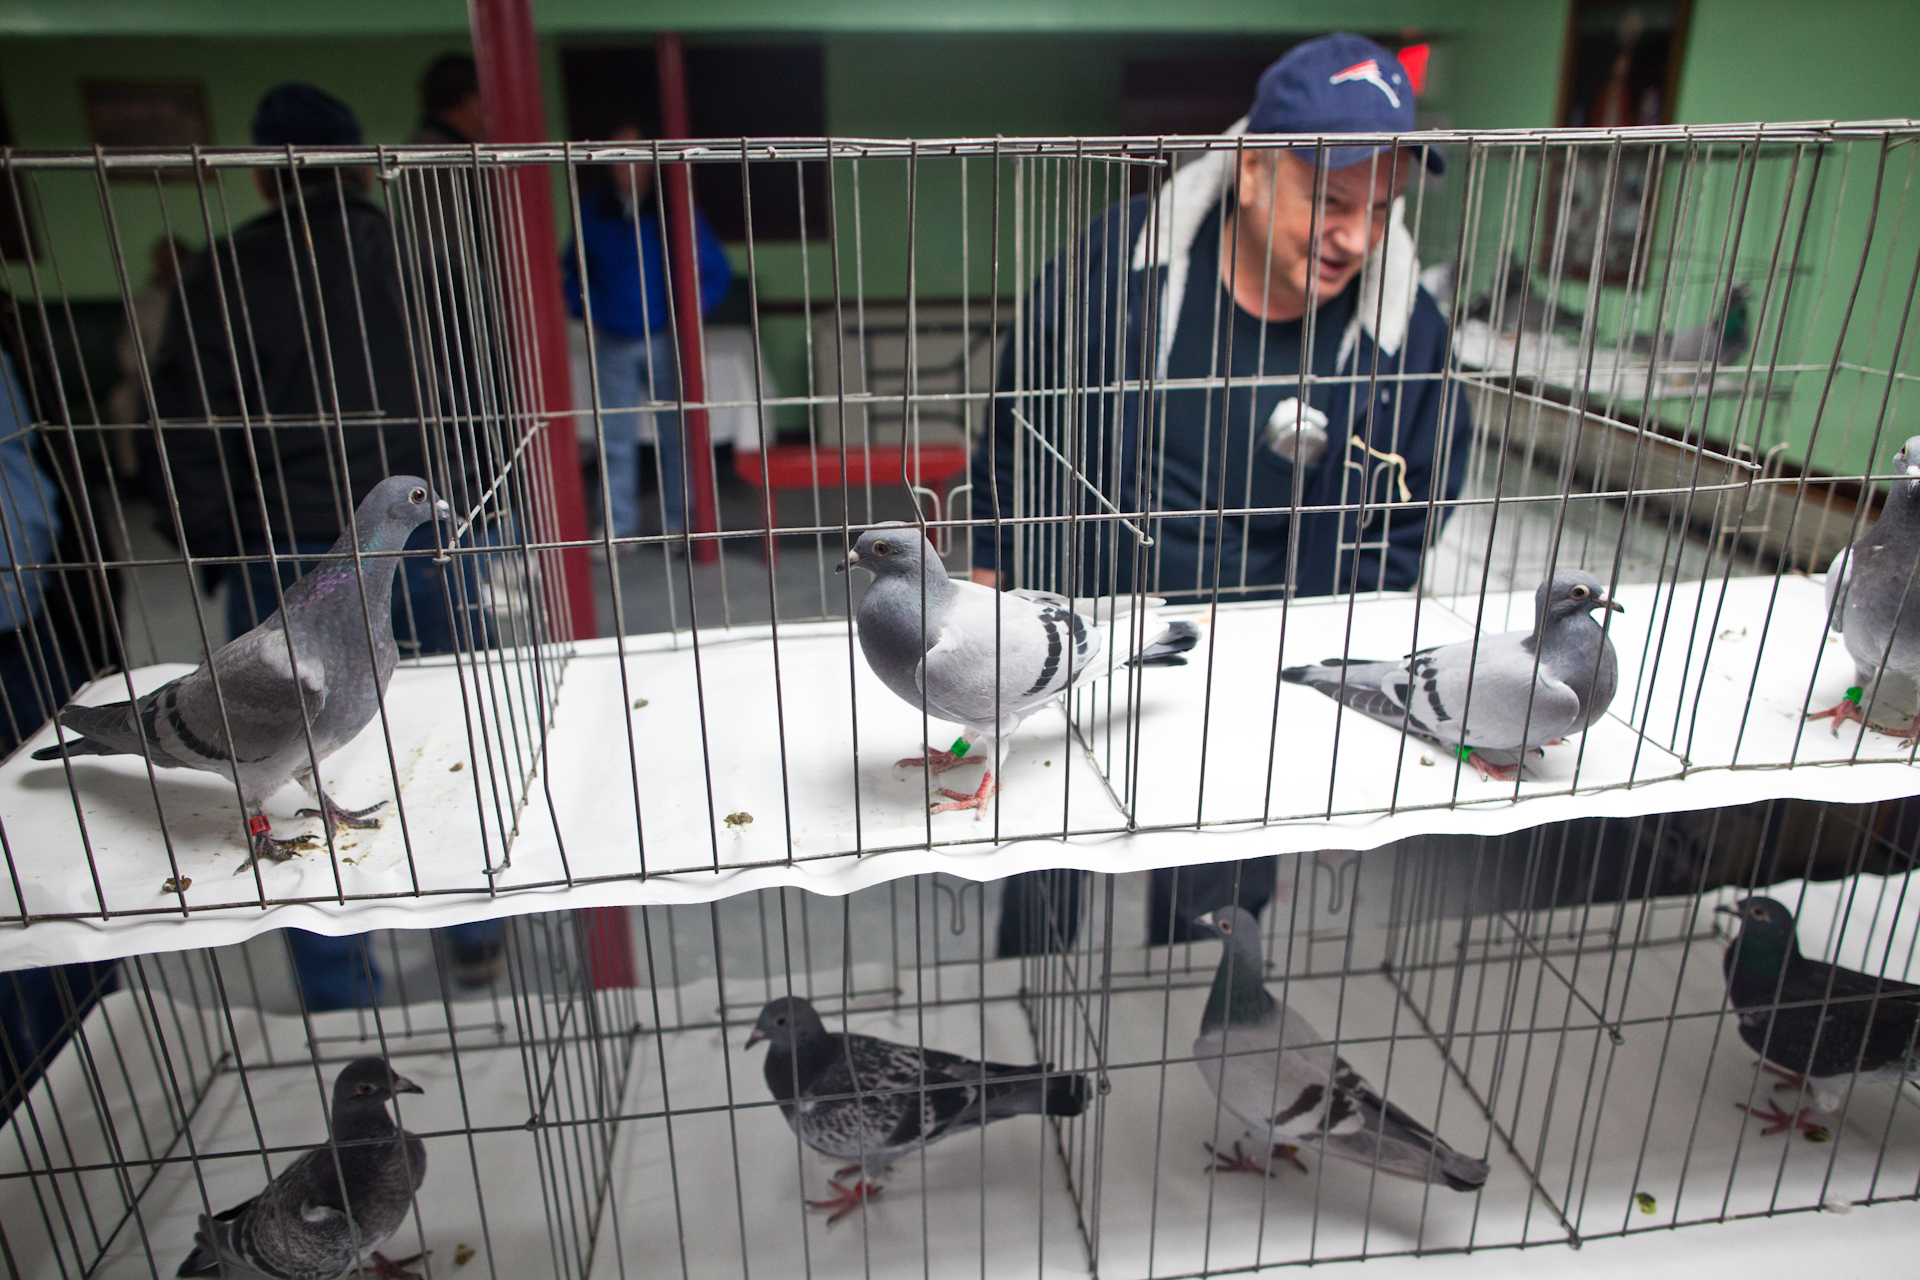 american racing pigeon union auction in new bedford